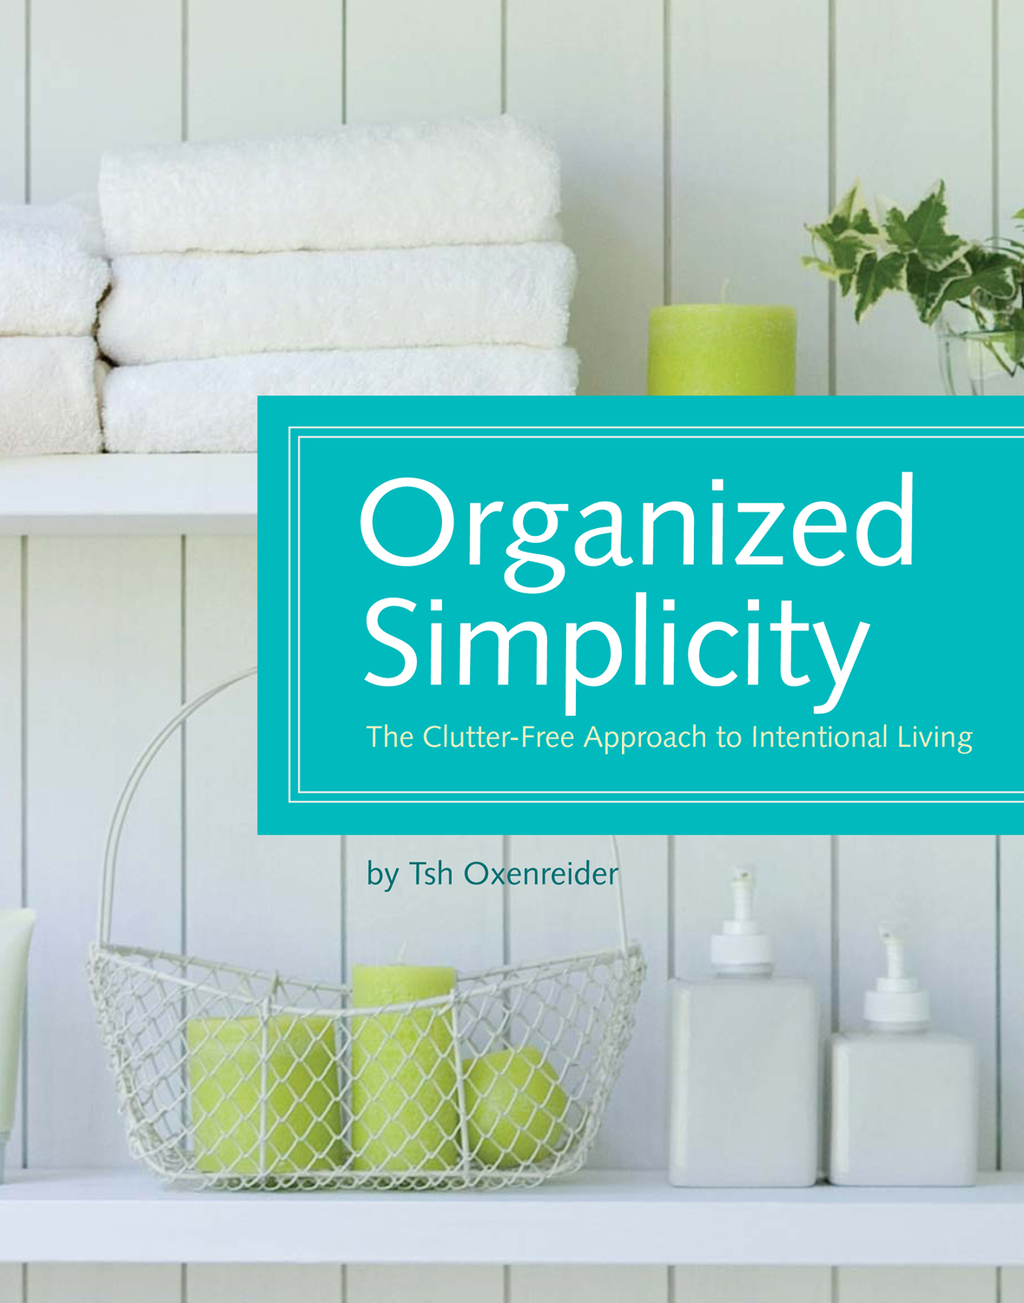 Organized Simplicity: The Clutter-Free Approach to Intentional Living By: Tsh Oxenreider